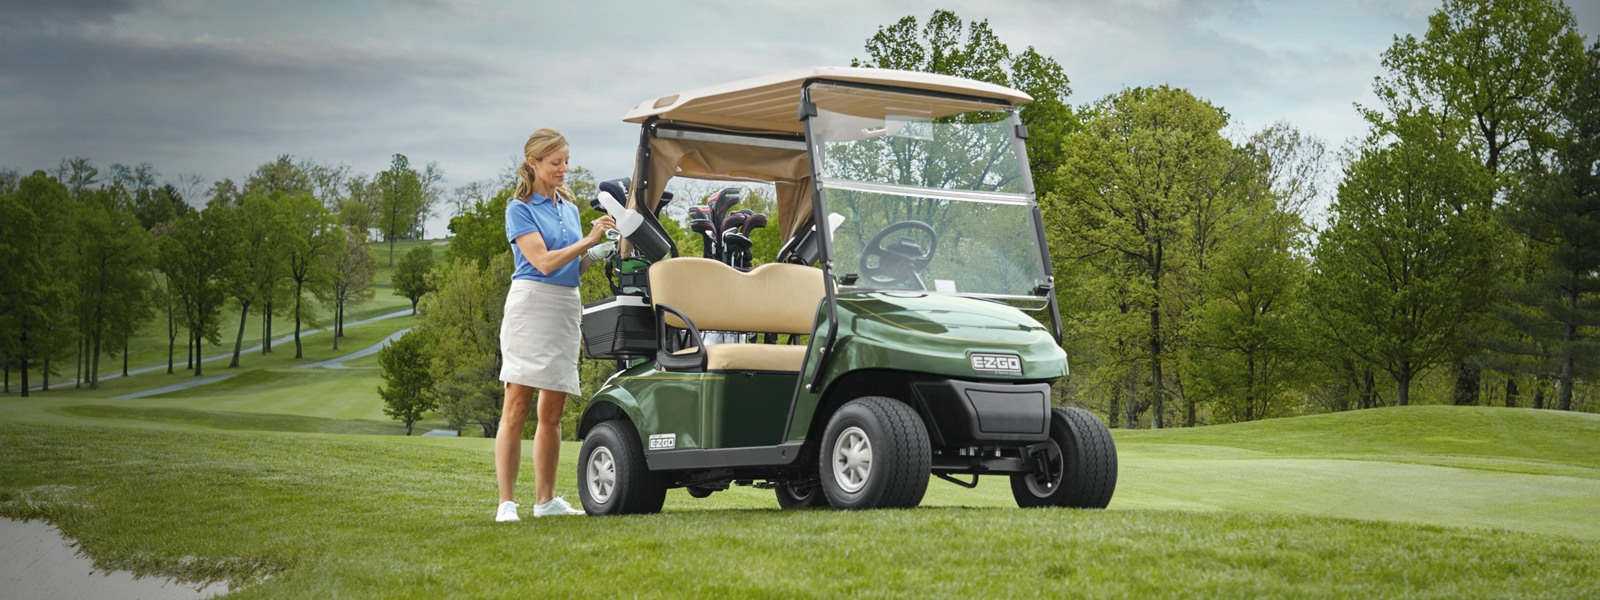 A woman next to a green E-Z-GO golf cart take a golf club out of the back.